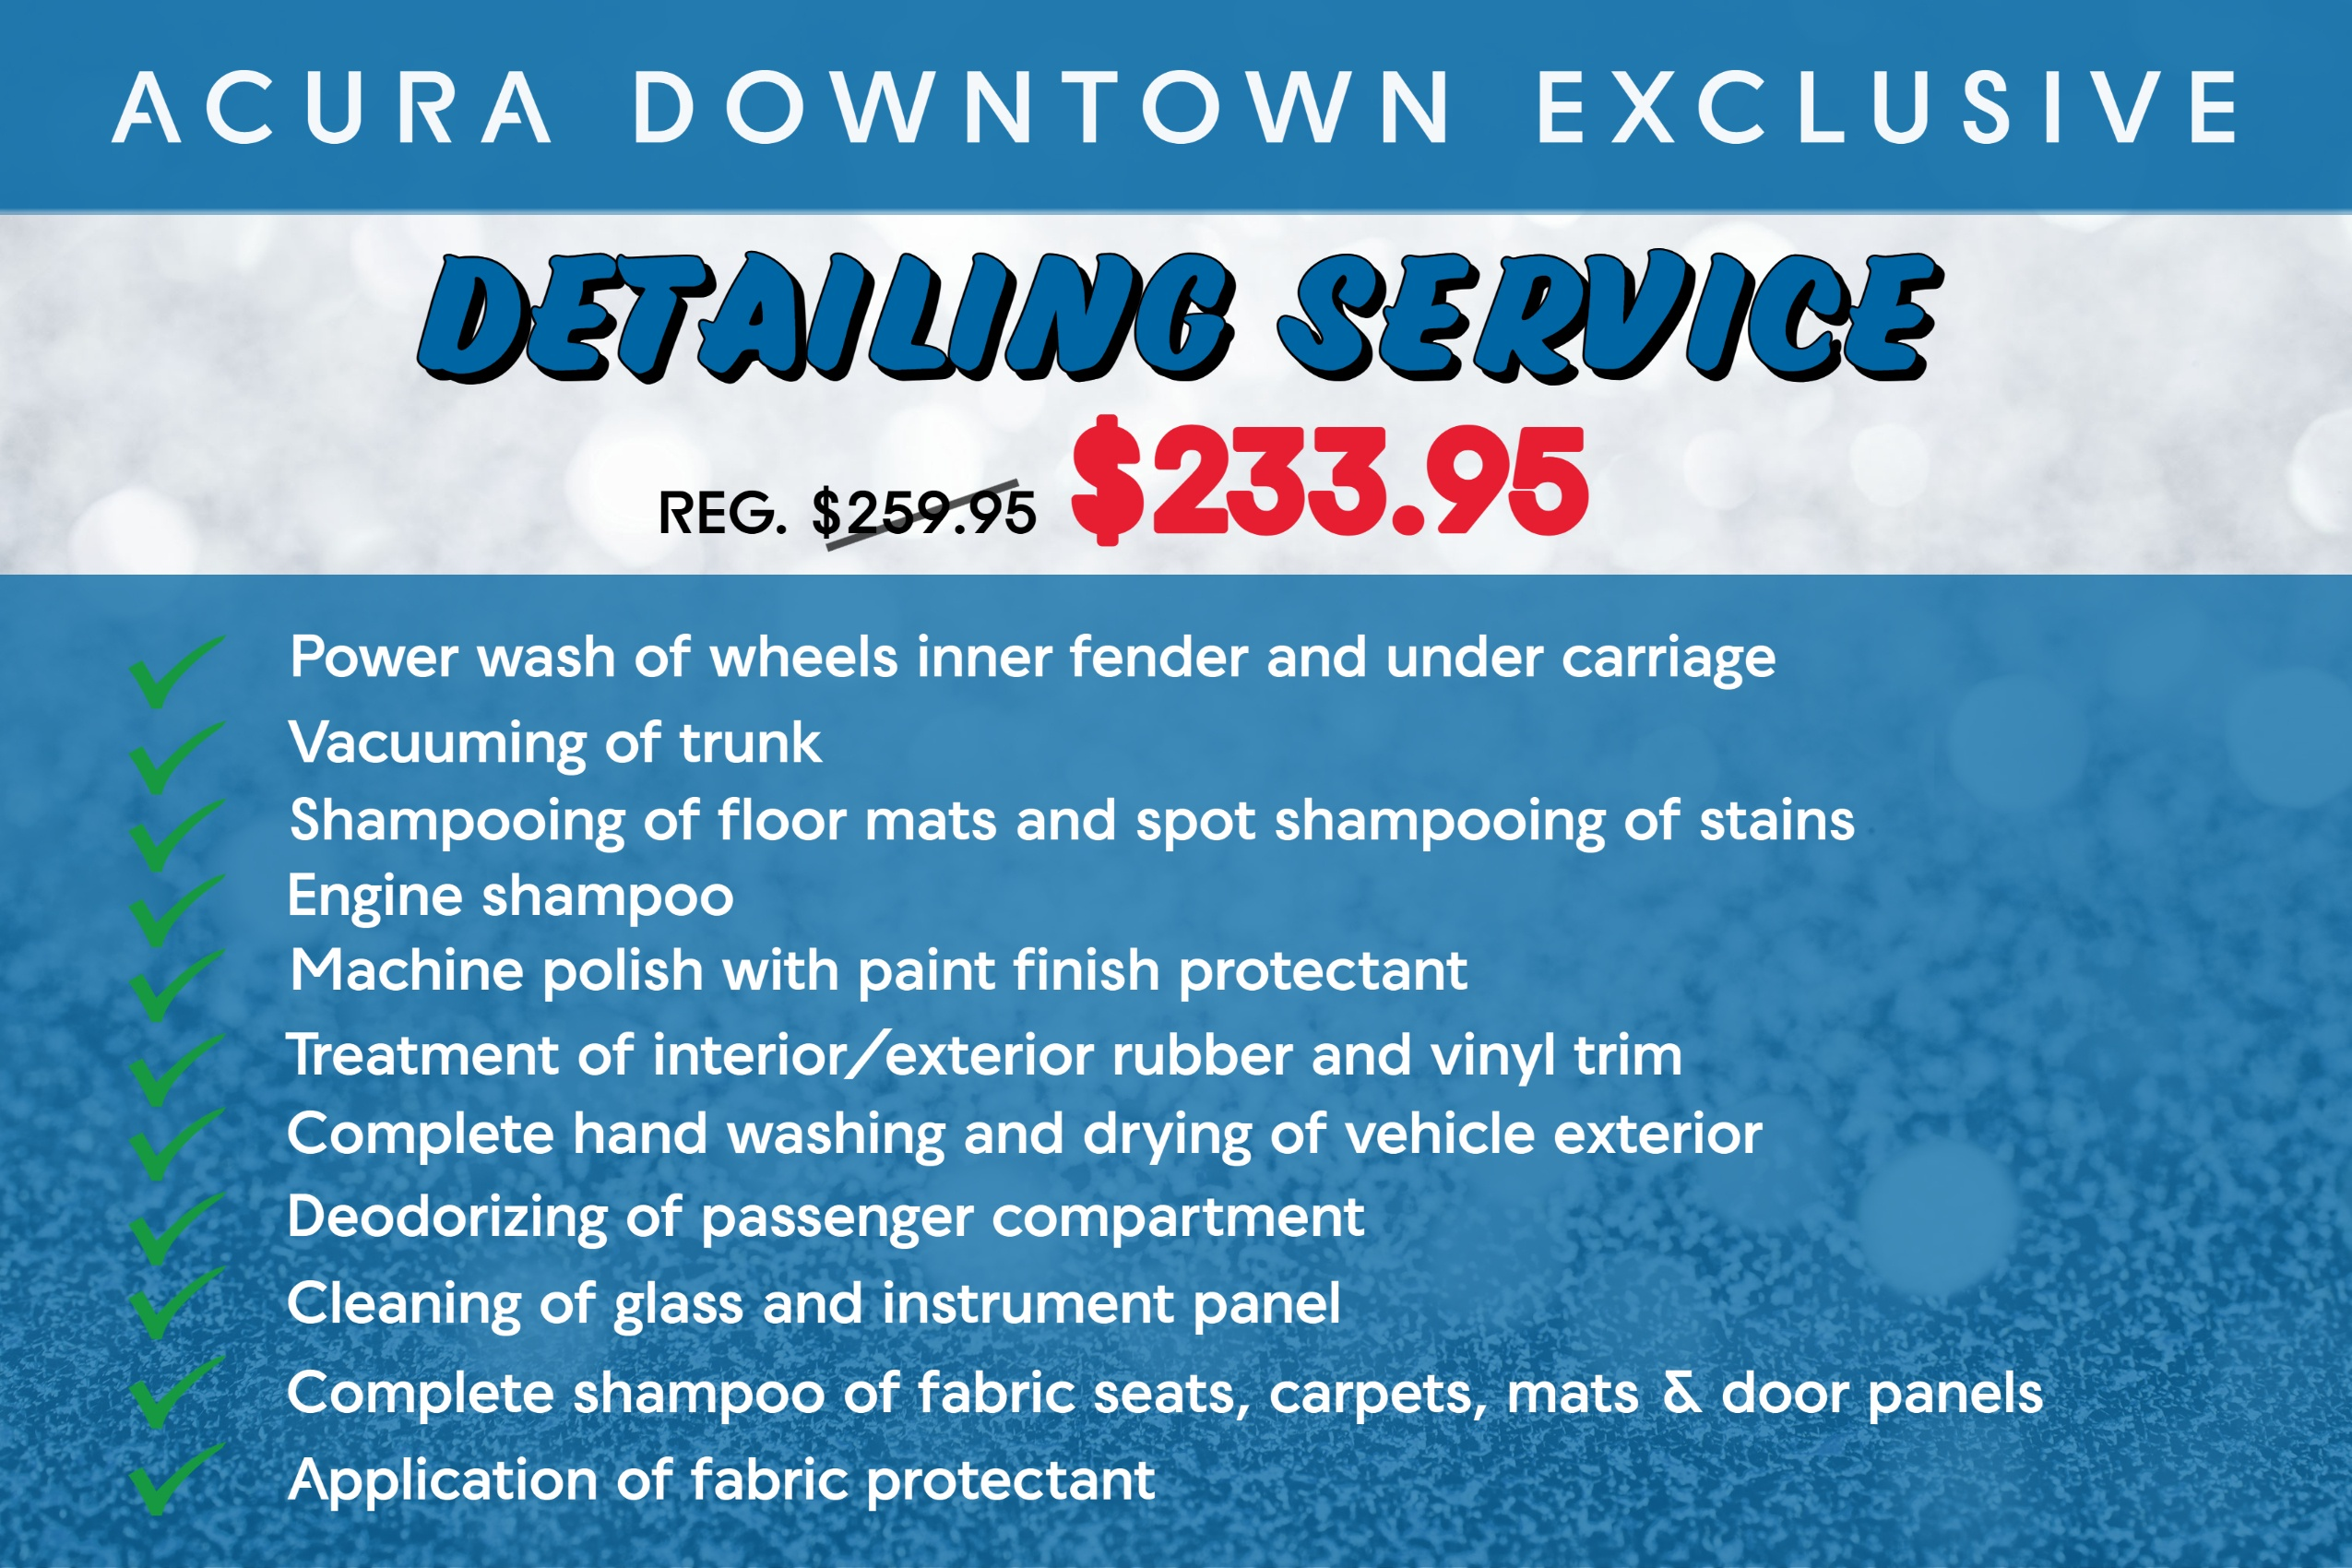 Acura Downtown Detailing Service